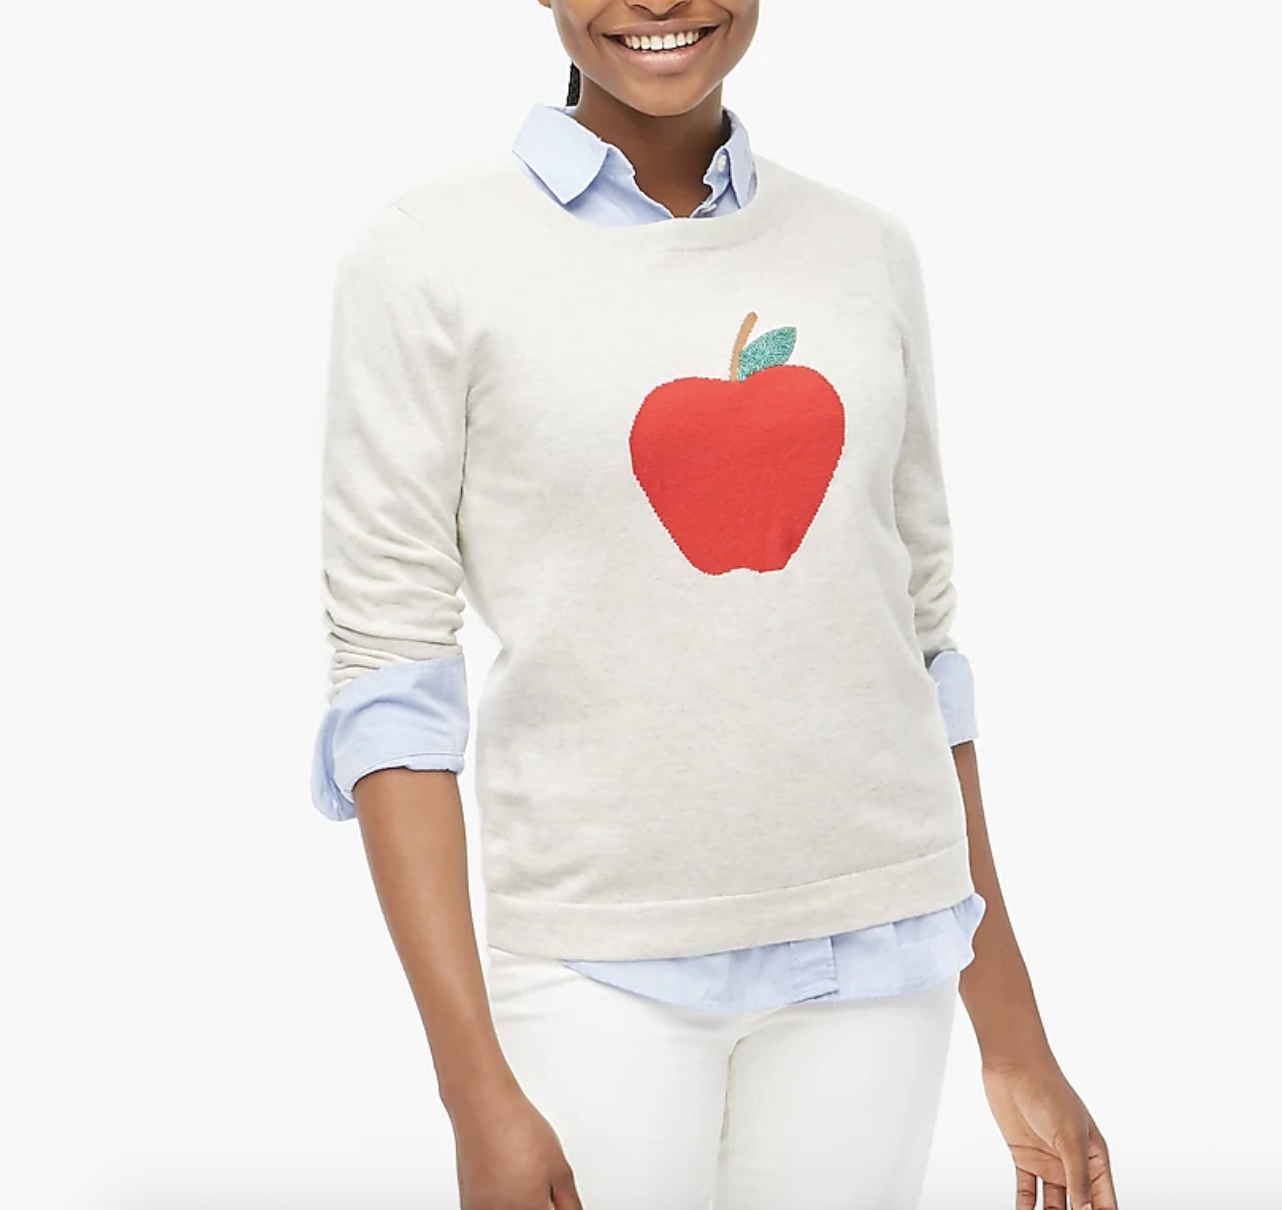 a model in a white crew neck sweater with a red apple icon on it